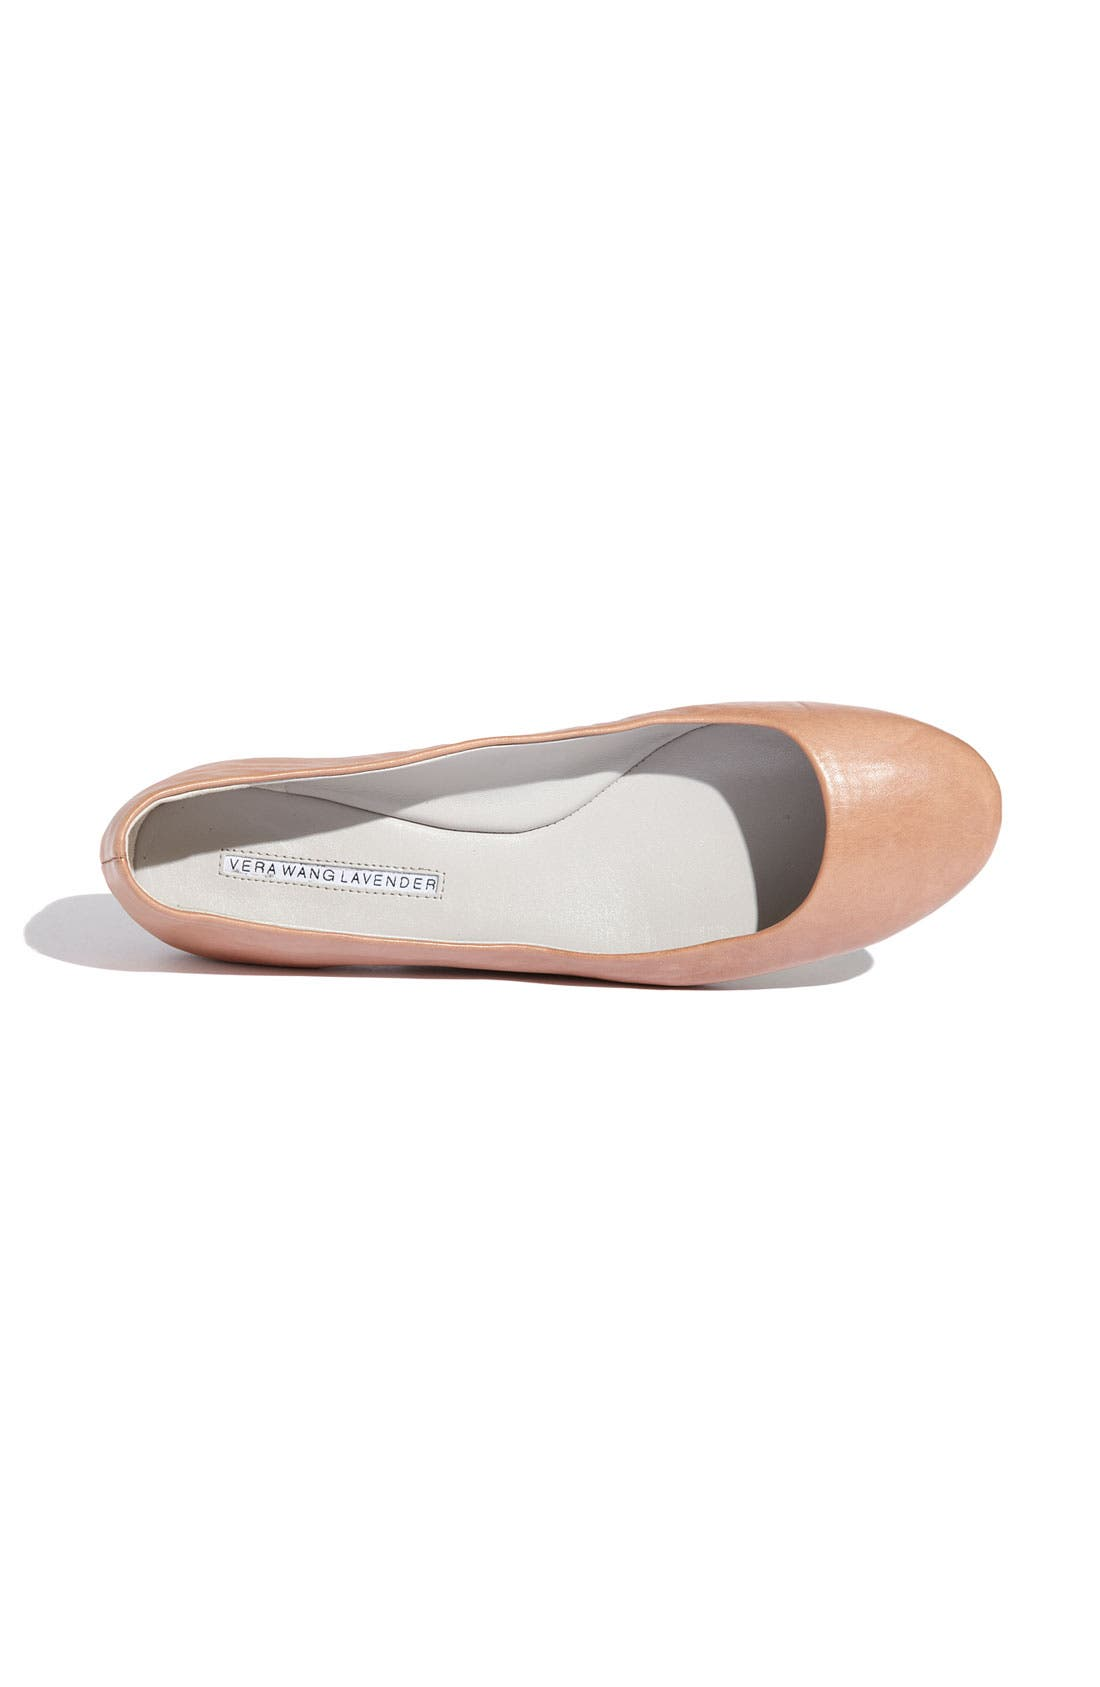 Alternate Image 3  - Vera Wang Footwear 'Lara' Flat